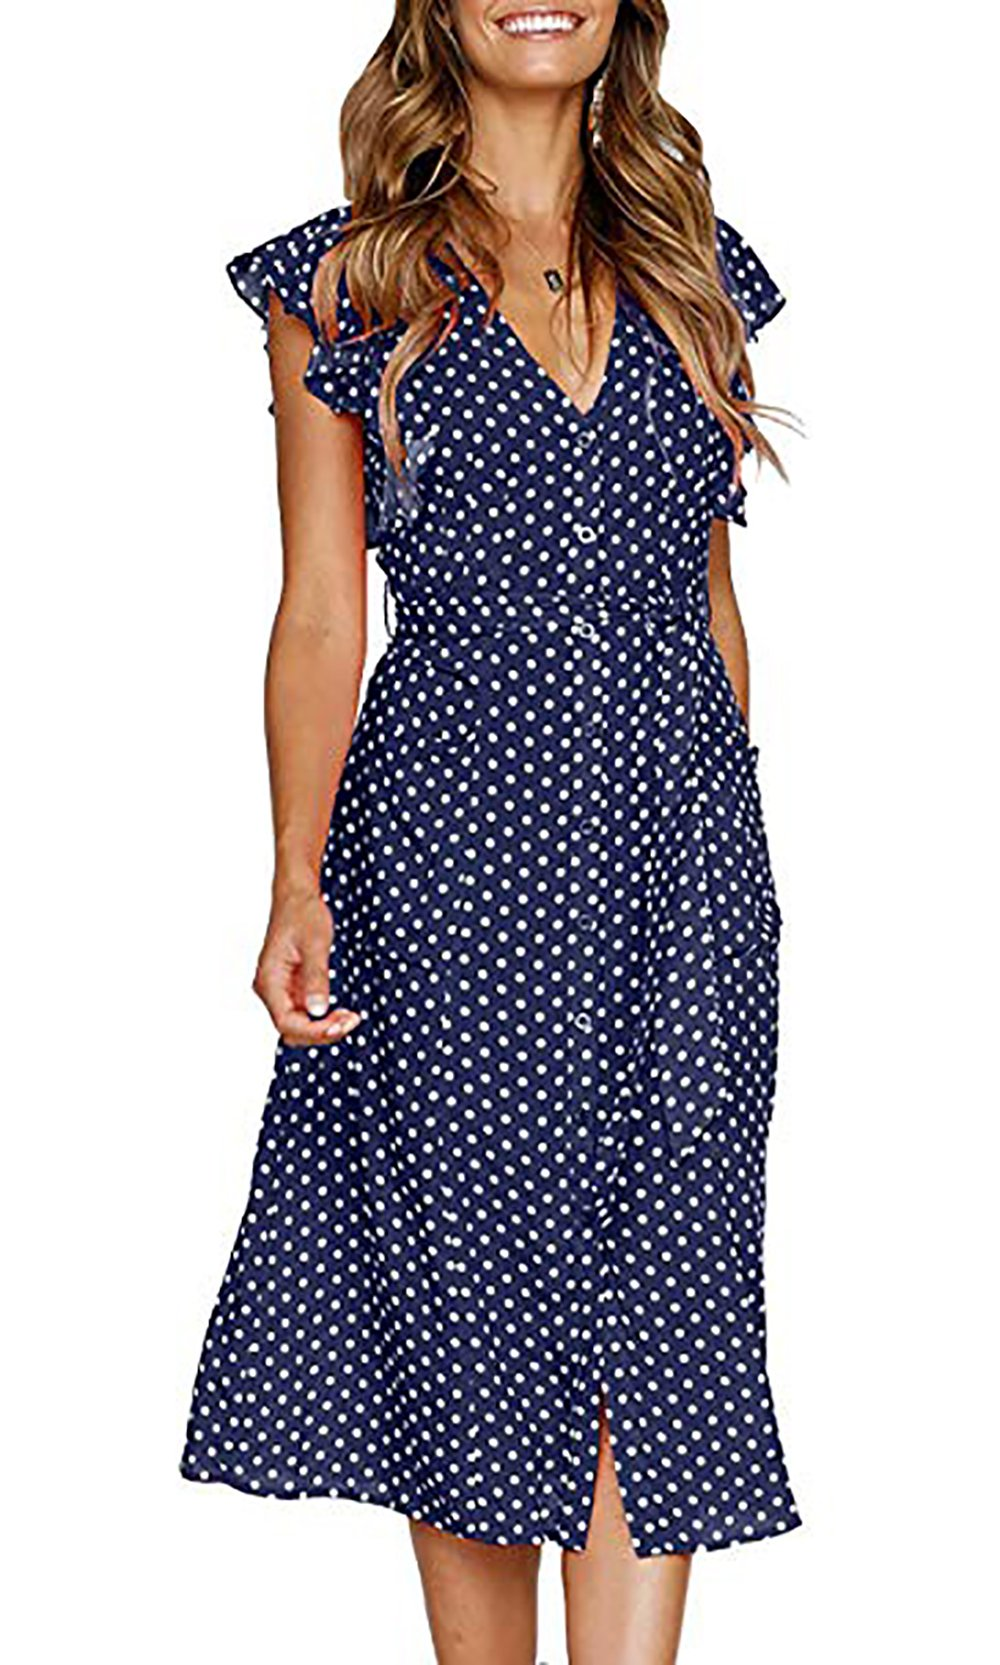 BTFBM Women's 2018 V Neck Polka dot High Waist Tie Bow Streetwear Boho Maxi Dress Without Belt (Navy, Medium)